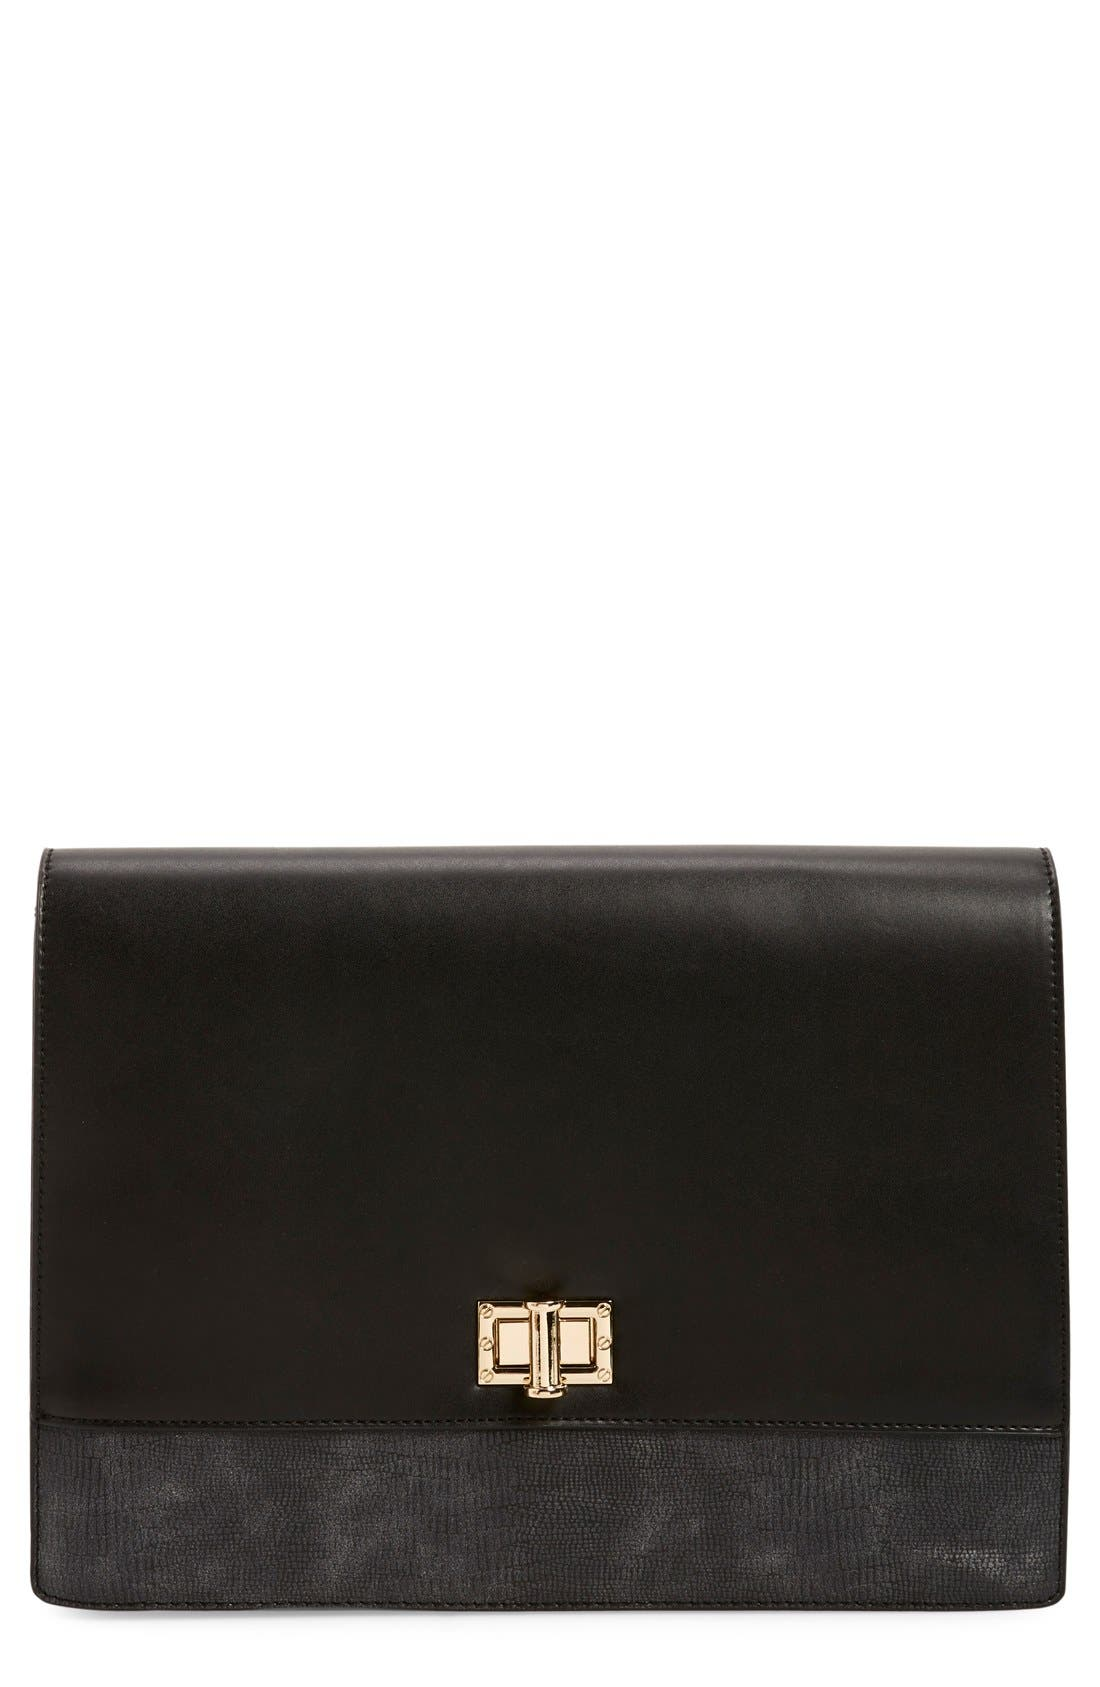 'Exotic' Boxy Flap Clutch, Main, color, 010